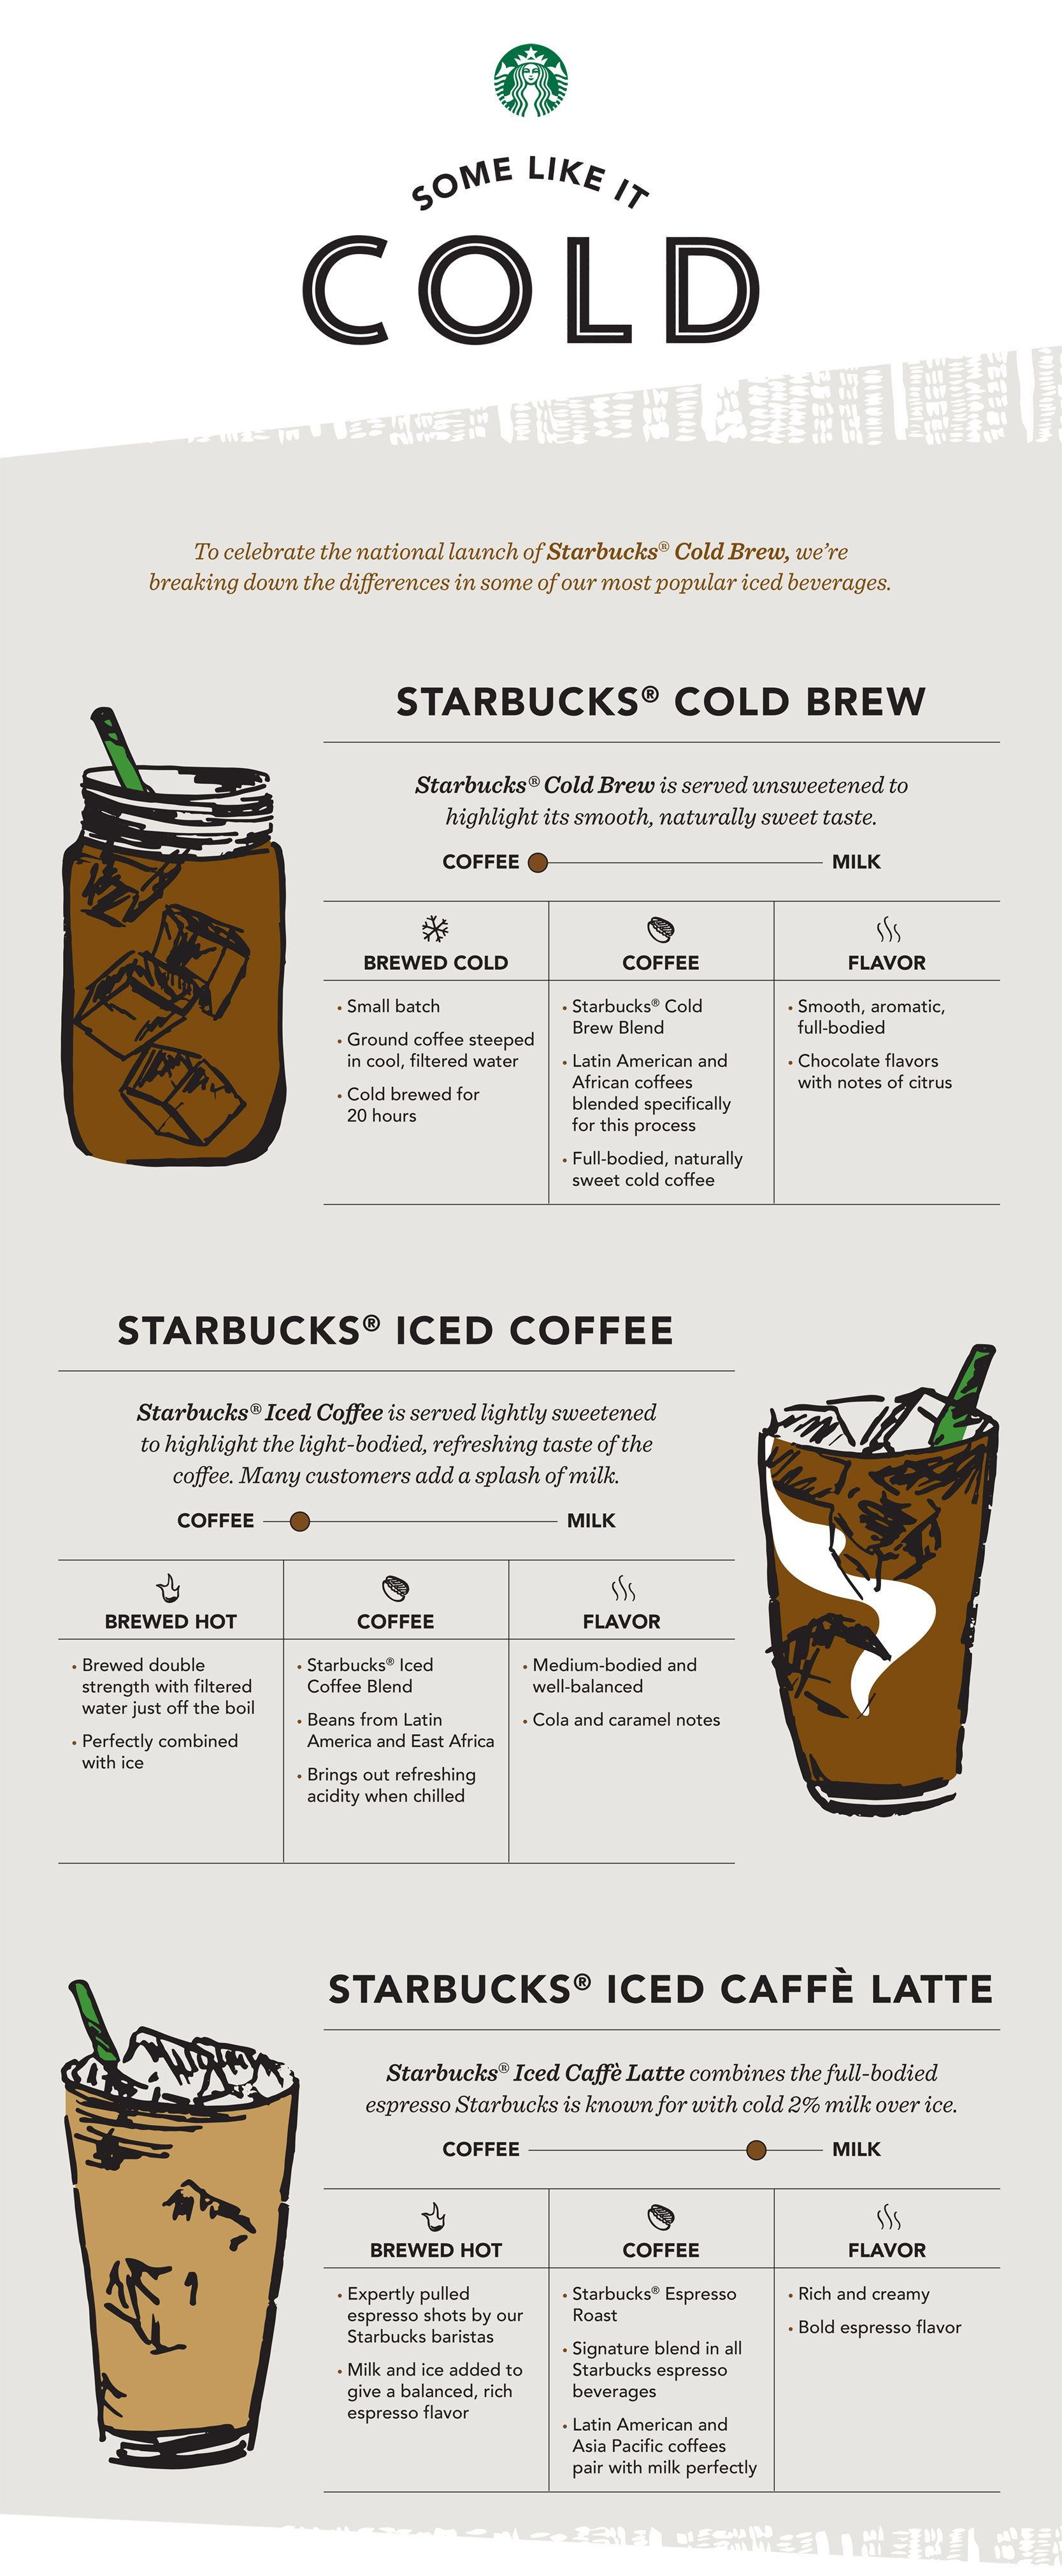 Starbucks SmallBatch Cold Brew Coffee Expands Across the